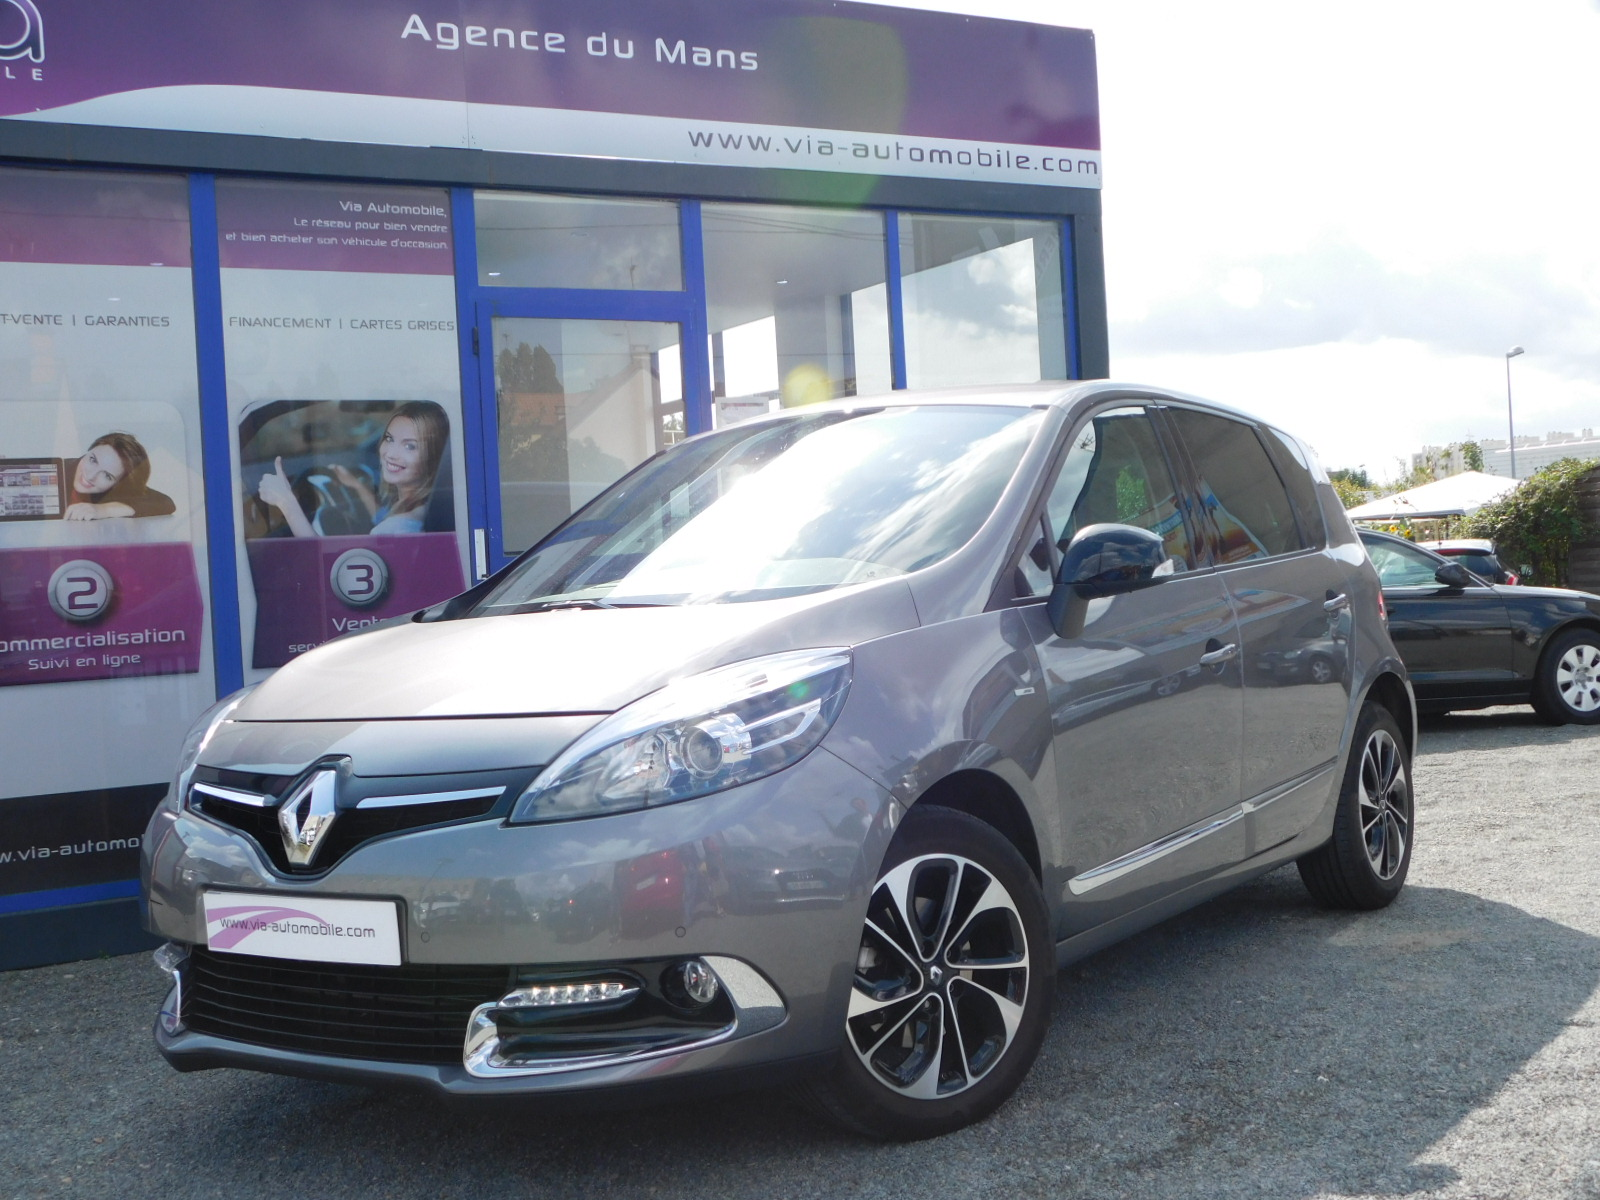 voiture renault sc nic iii dci 110 energy eco2 bose edition 29000km occasion diesel 2015. Black Bedroom Furniture Sets. Home Design Ideas